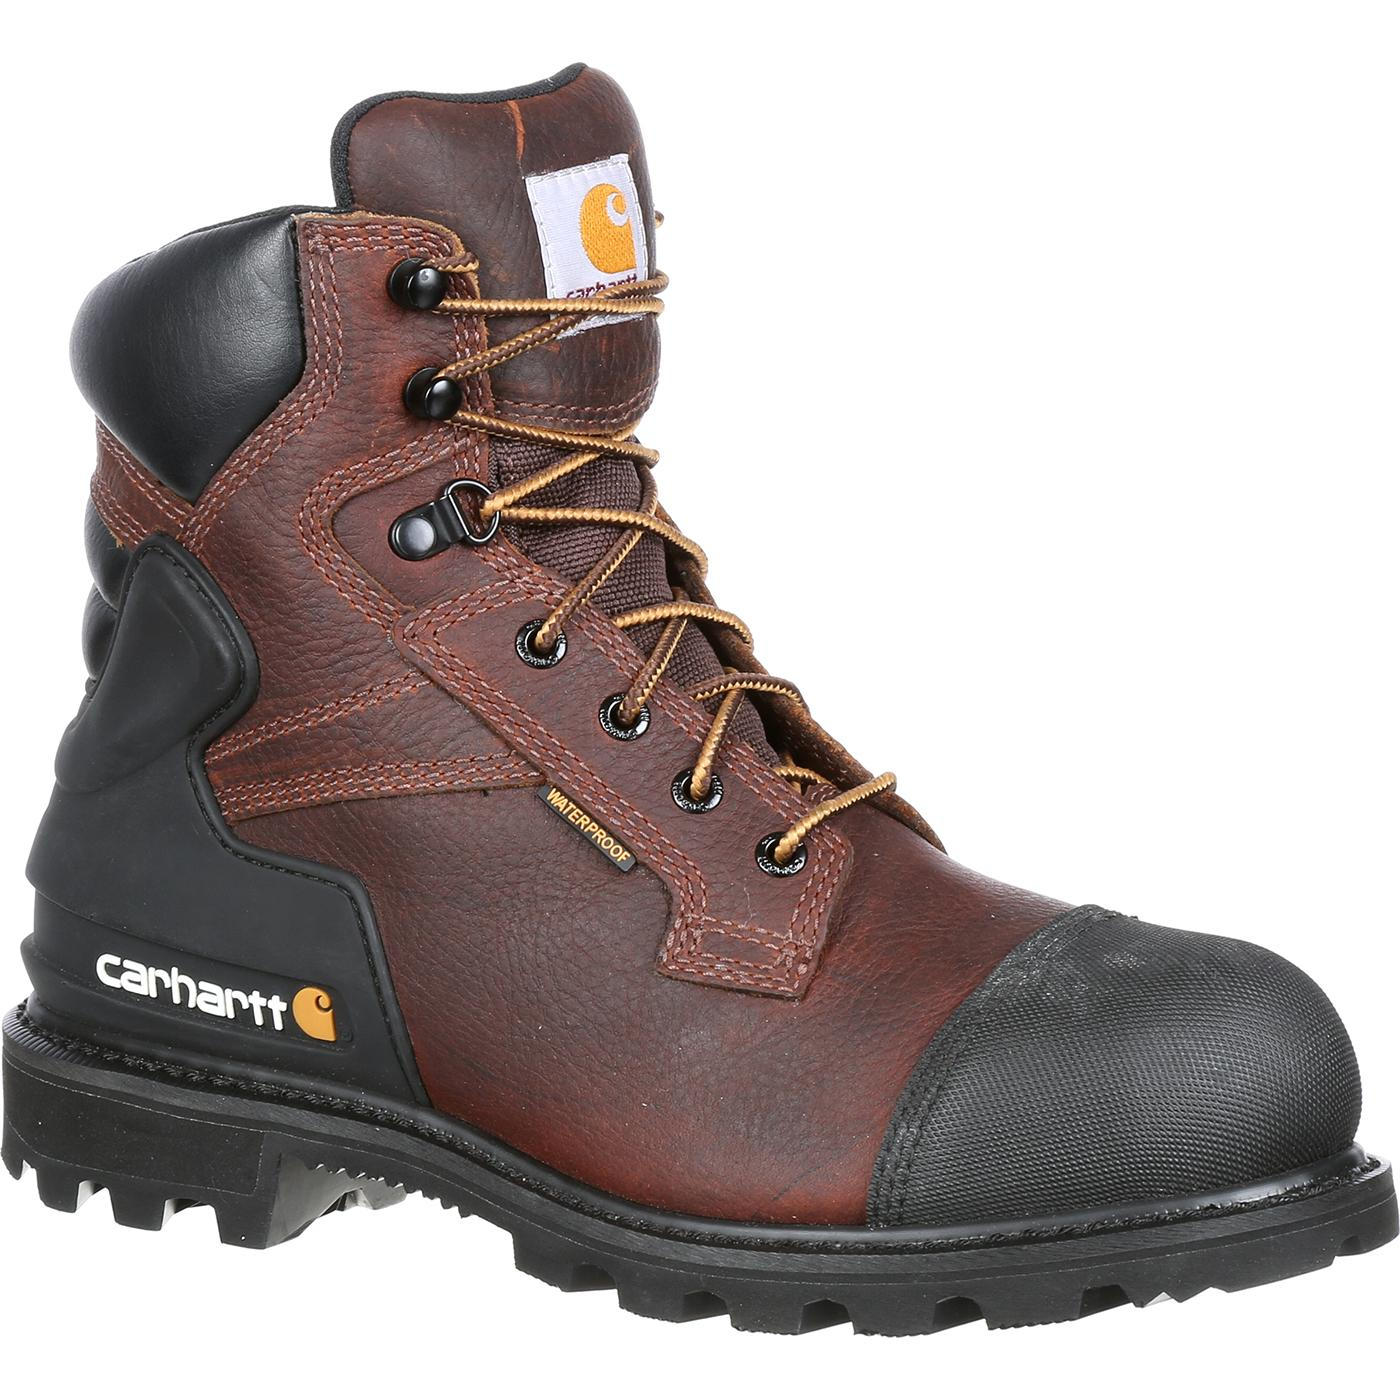 45890ee6a41 Carhartt CSA-Approved Steel Toe Puncture-Resistant Waterproof 400g  Insulated Work Boot